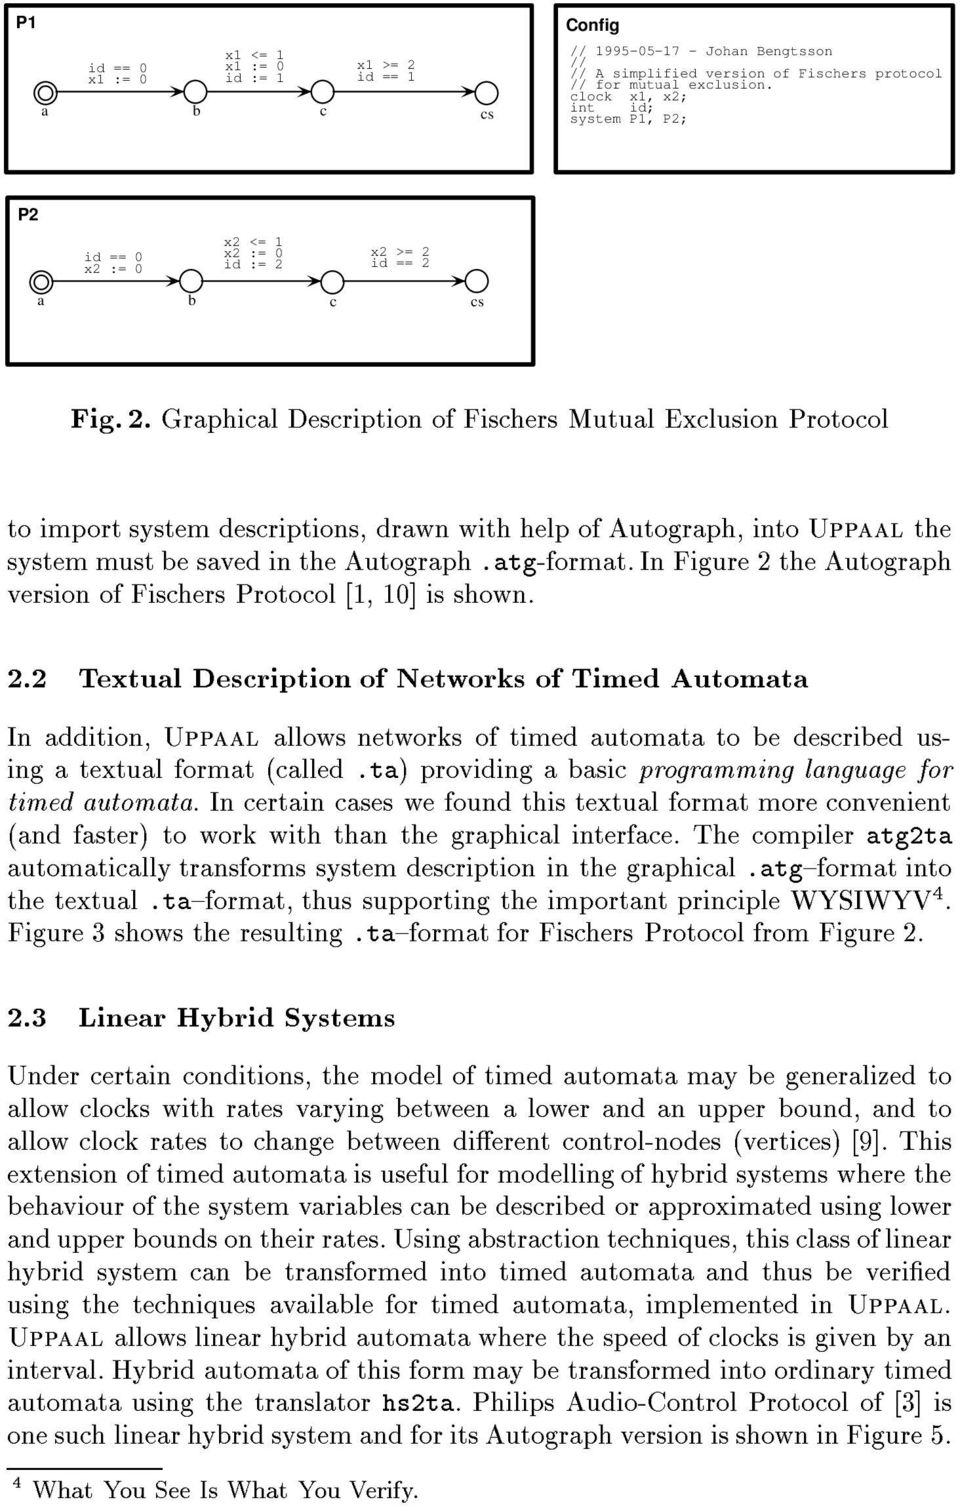 x2 >= id == 2 a b c cs Fig. 2. Graphical Description of Fischers Mutual Exclusion Protocol to import system descriptions, drawn with help of Autograph, into Uppaal the system must be saved in the Autograph.